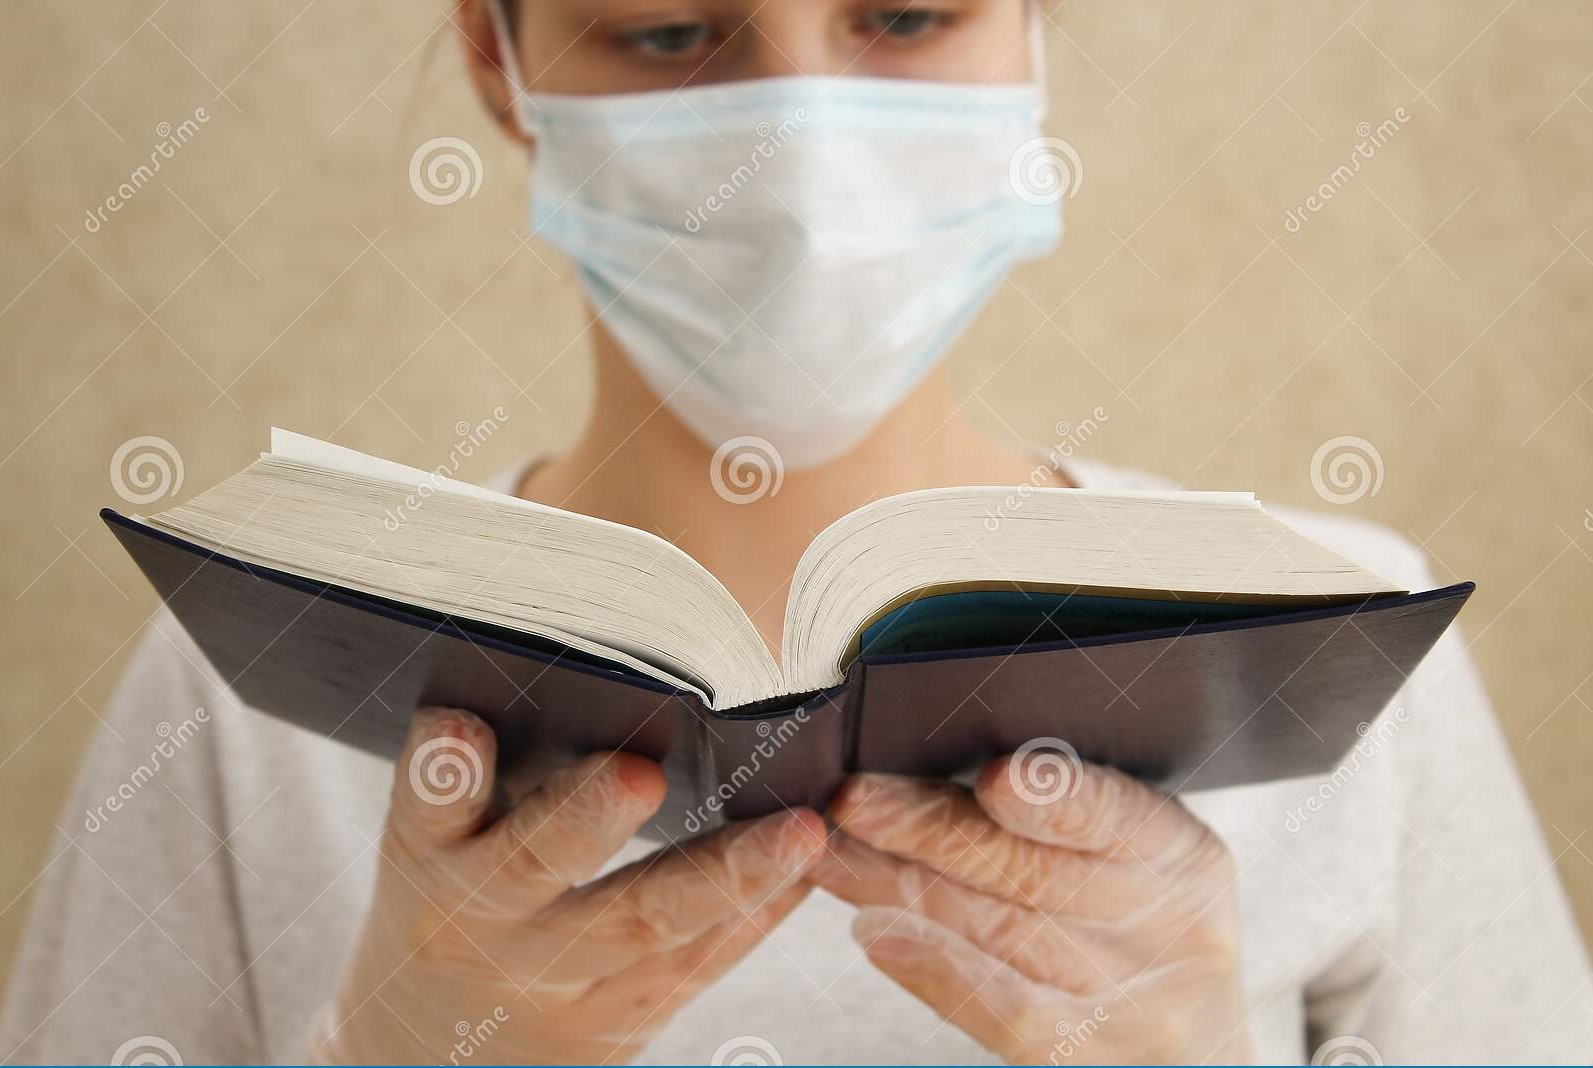 young woman medical mask gloves book home quarantine coronavirus outbreak self isolation pandemic world flu virus 177054207